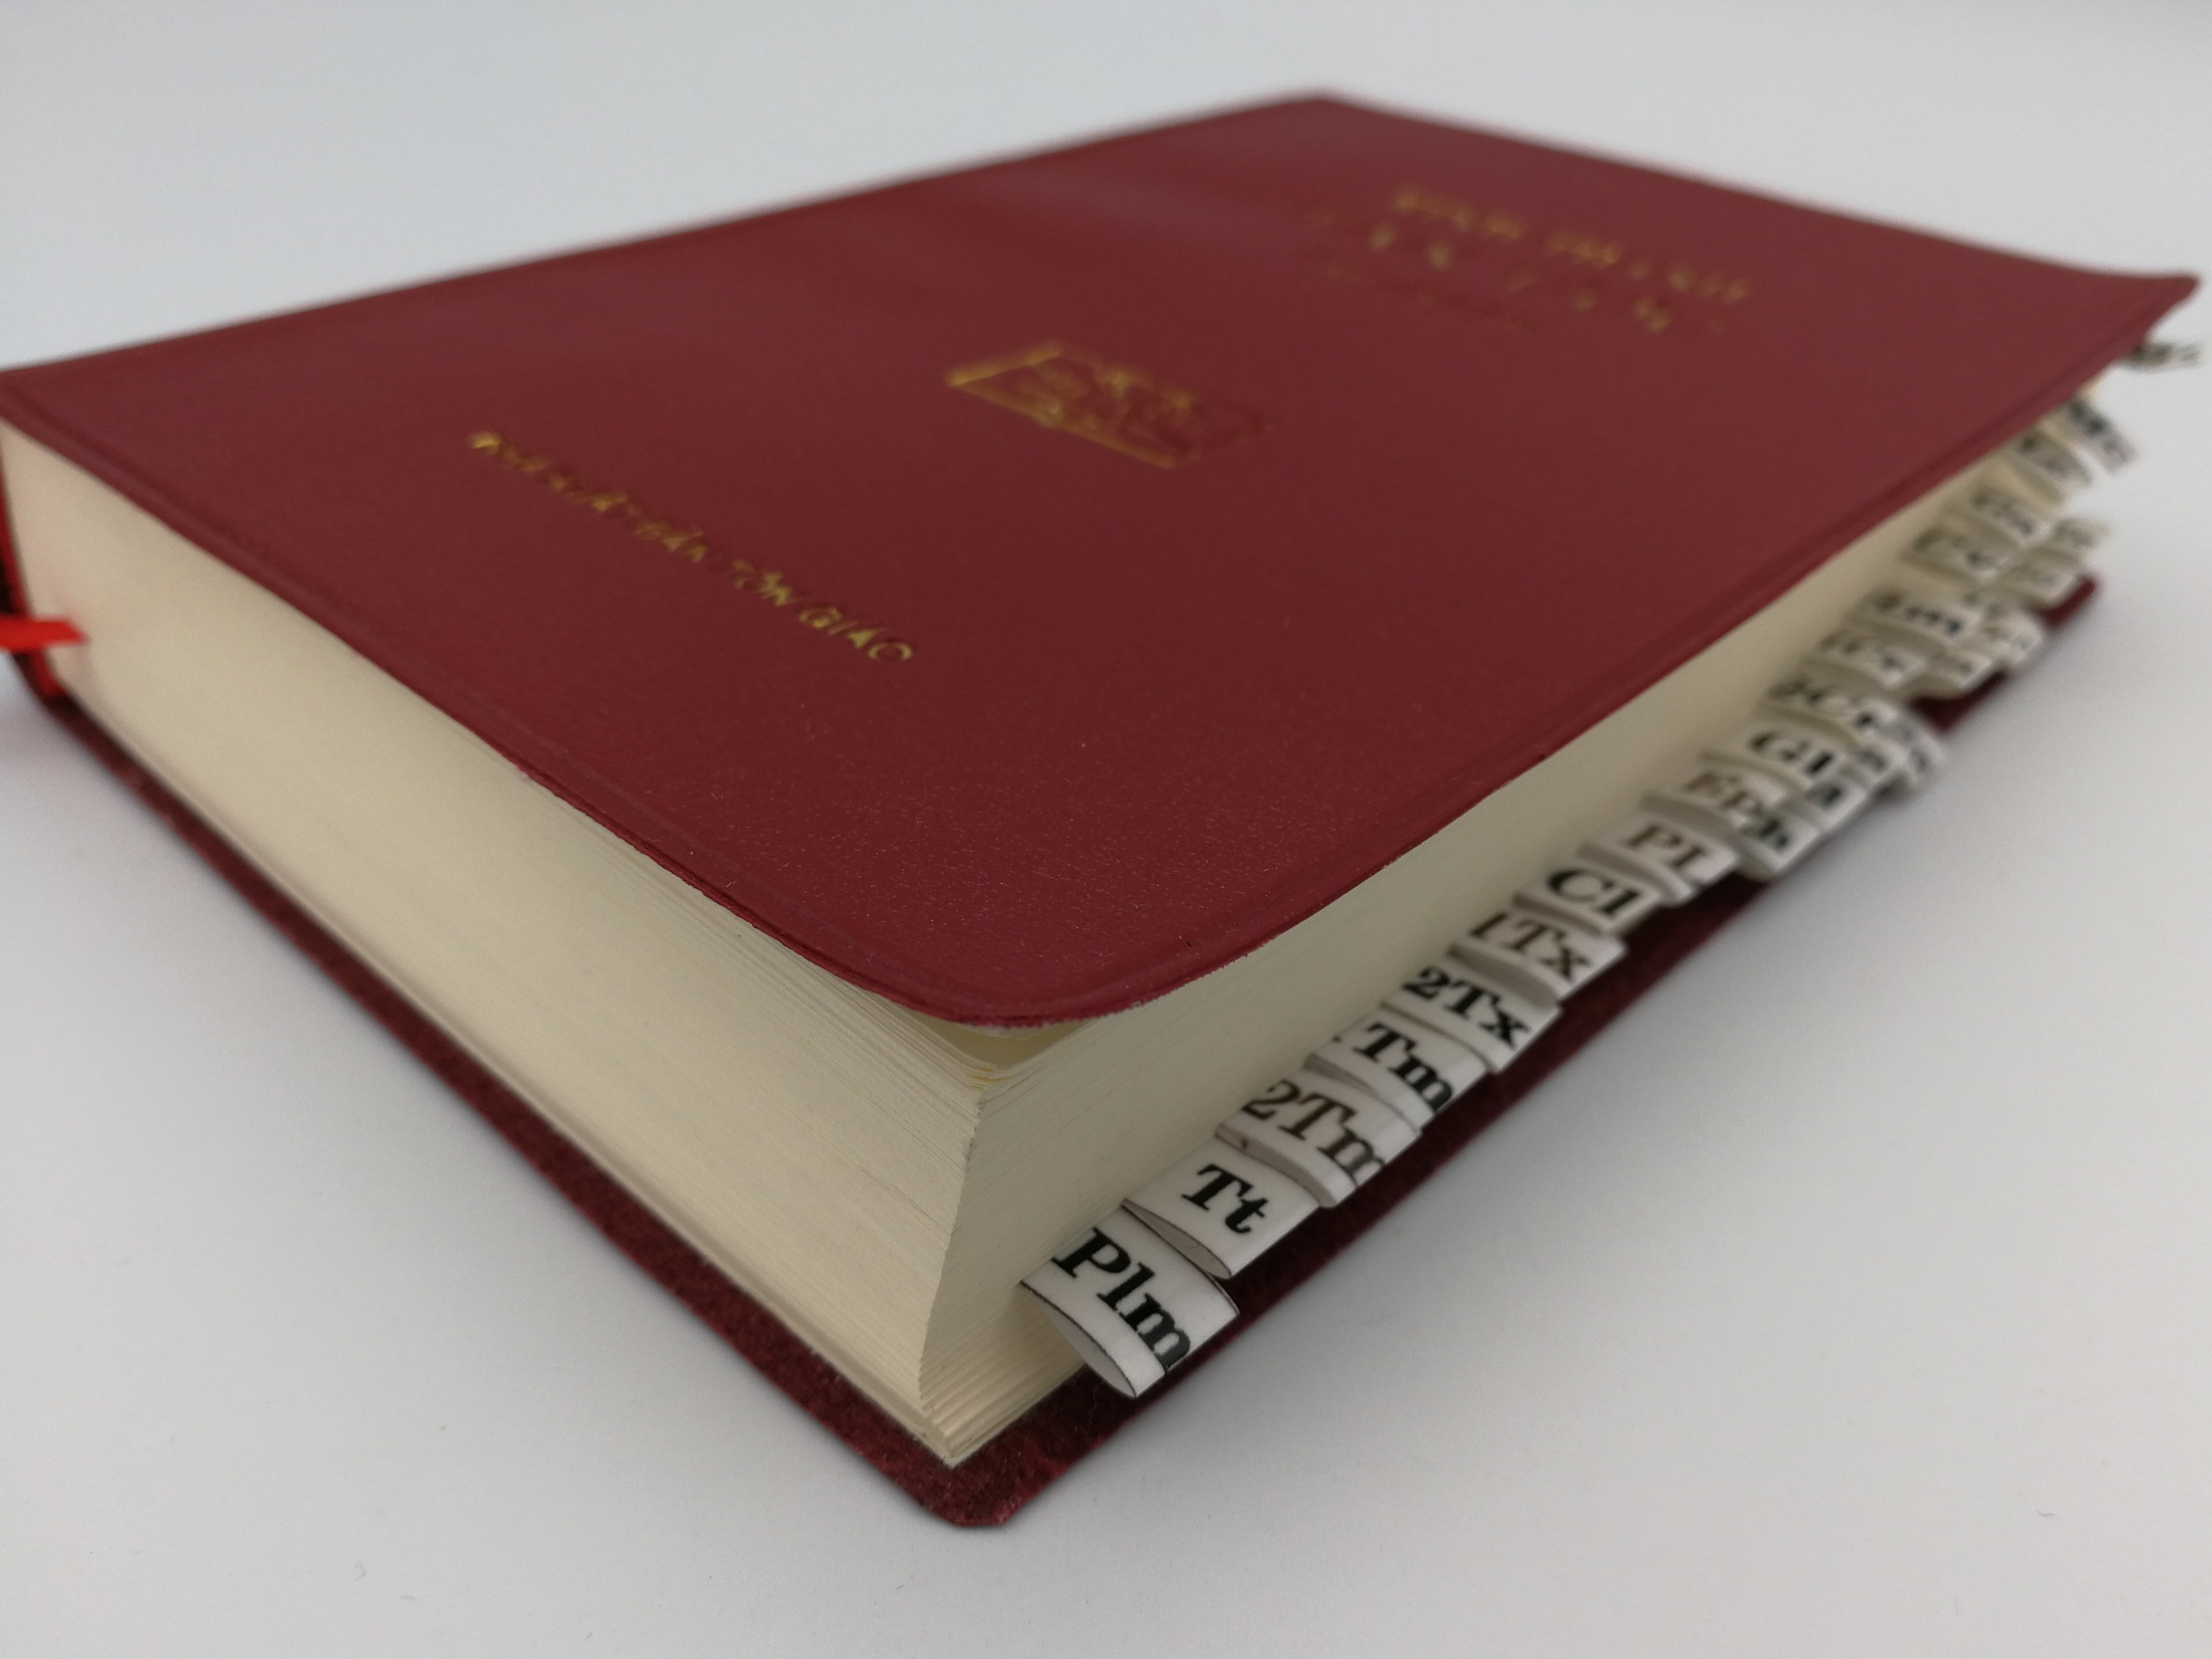 kinh-th-nh-t-n-c-vietnamese-new-testament-with-book-index3.jpg